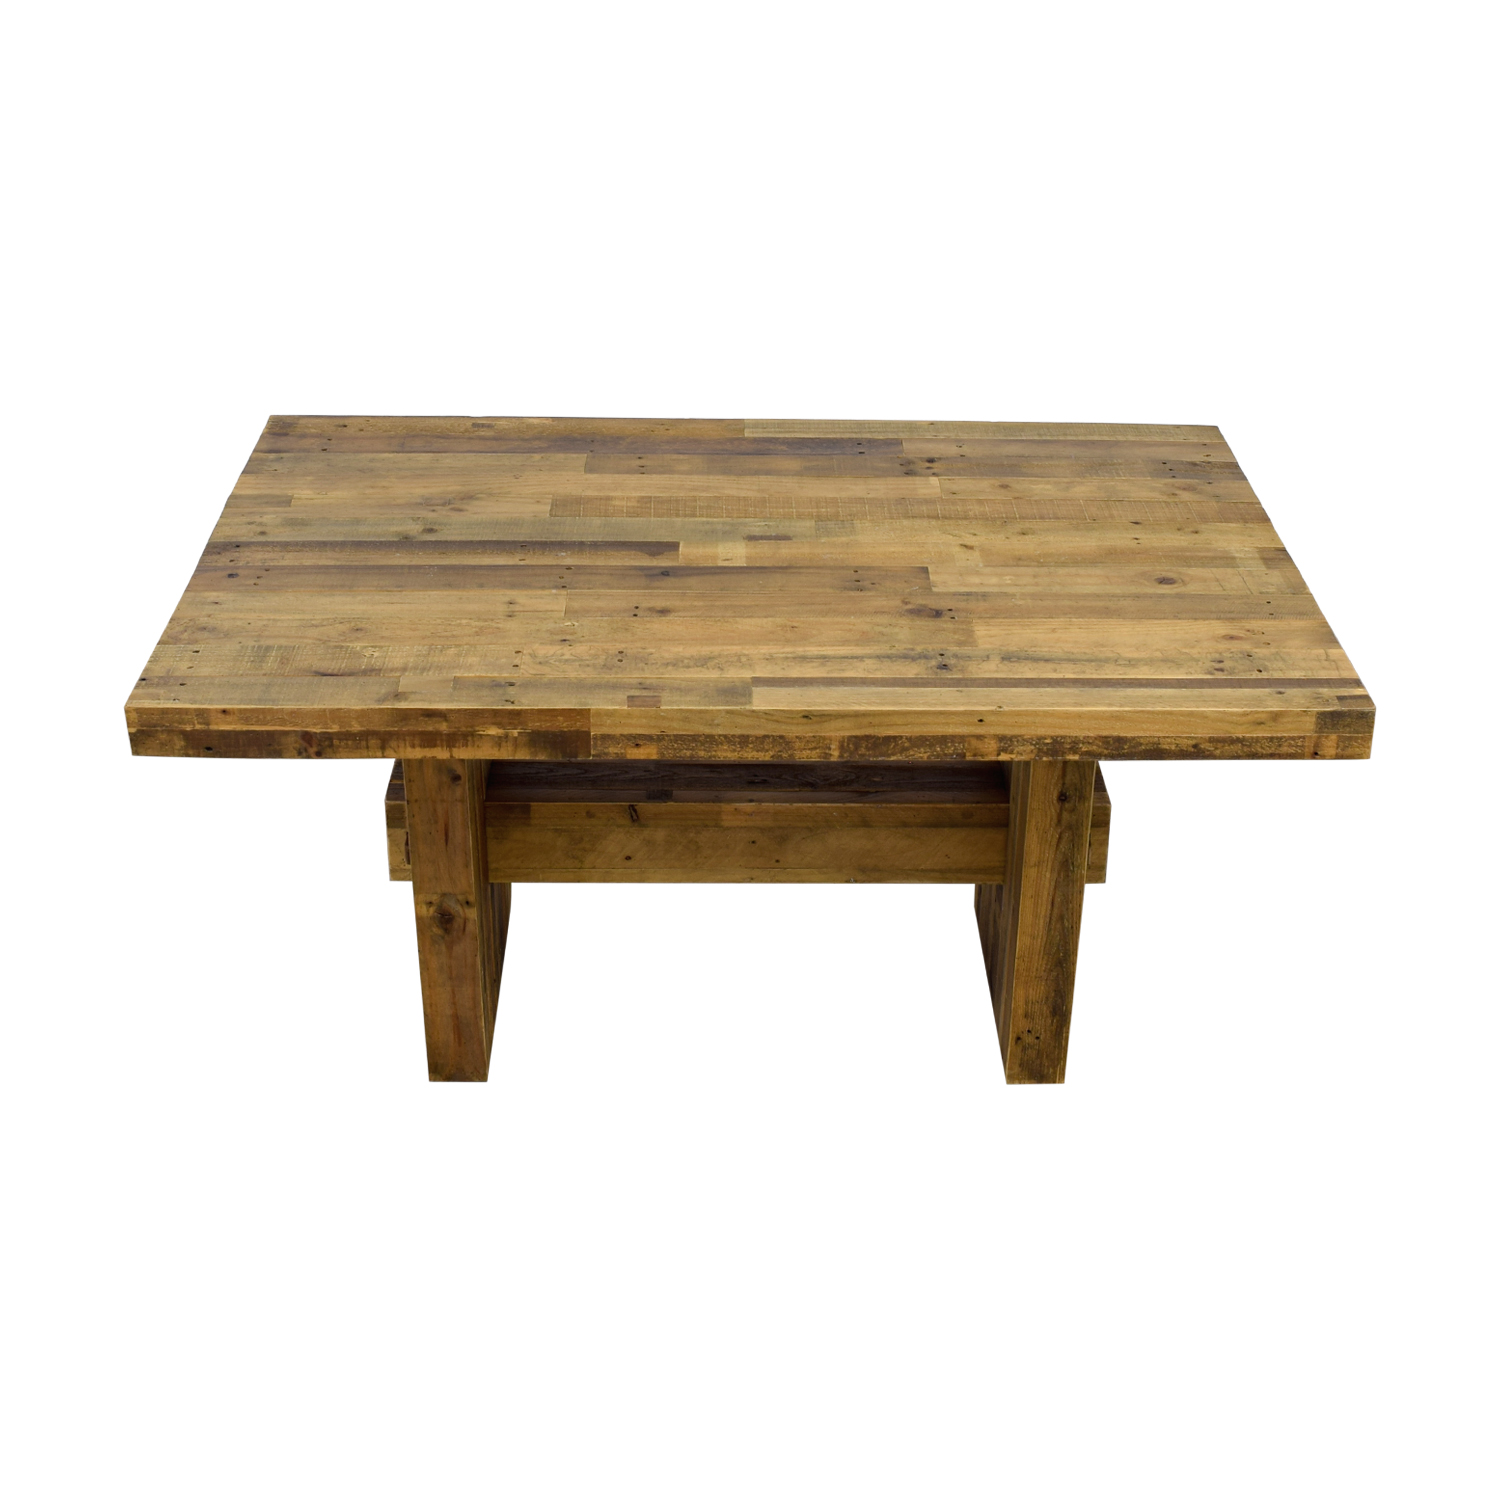 West Elm West Elm Emmerson Reclaimed Wood Dining Table second hand